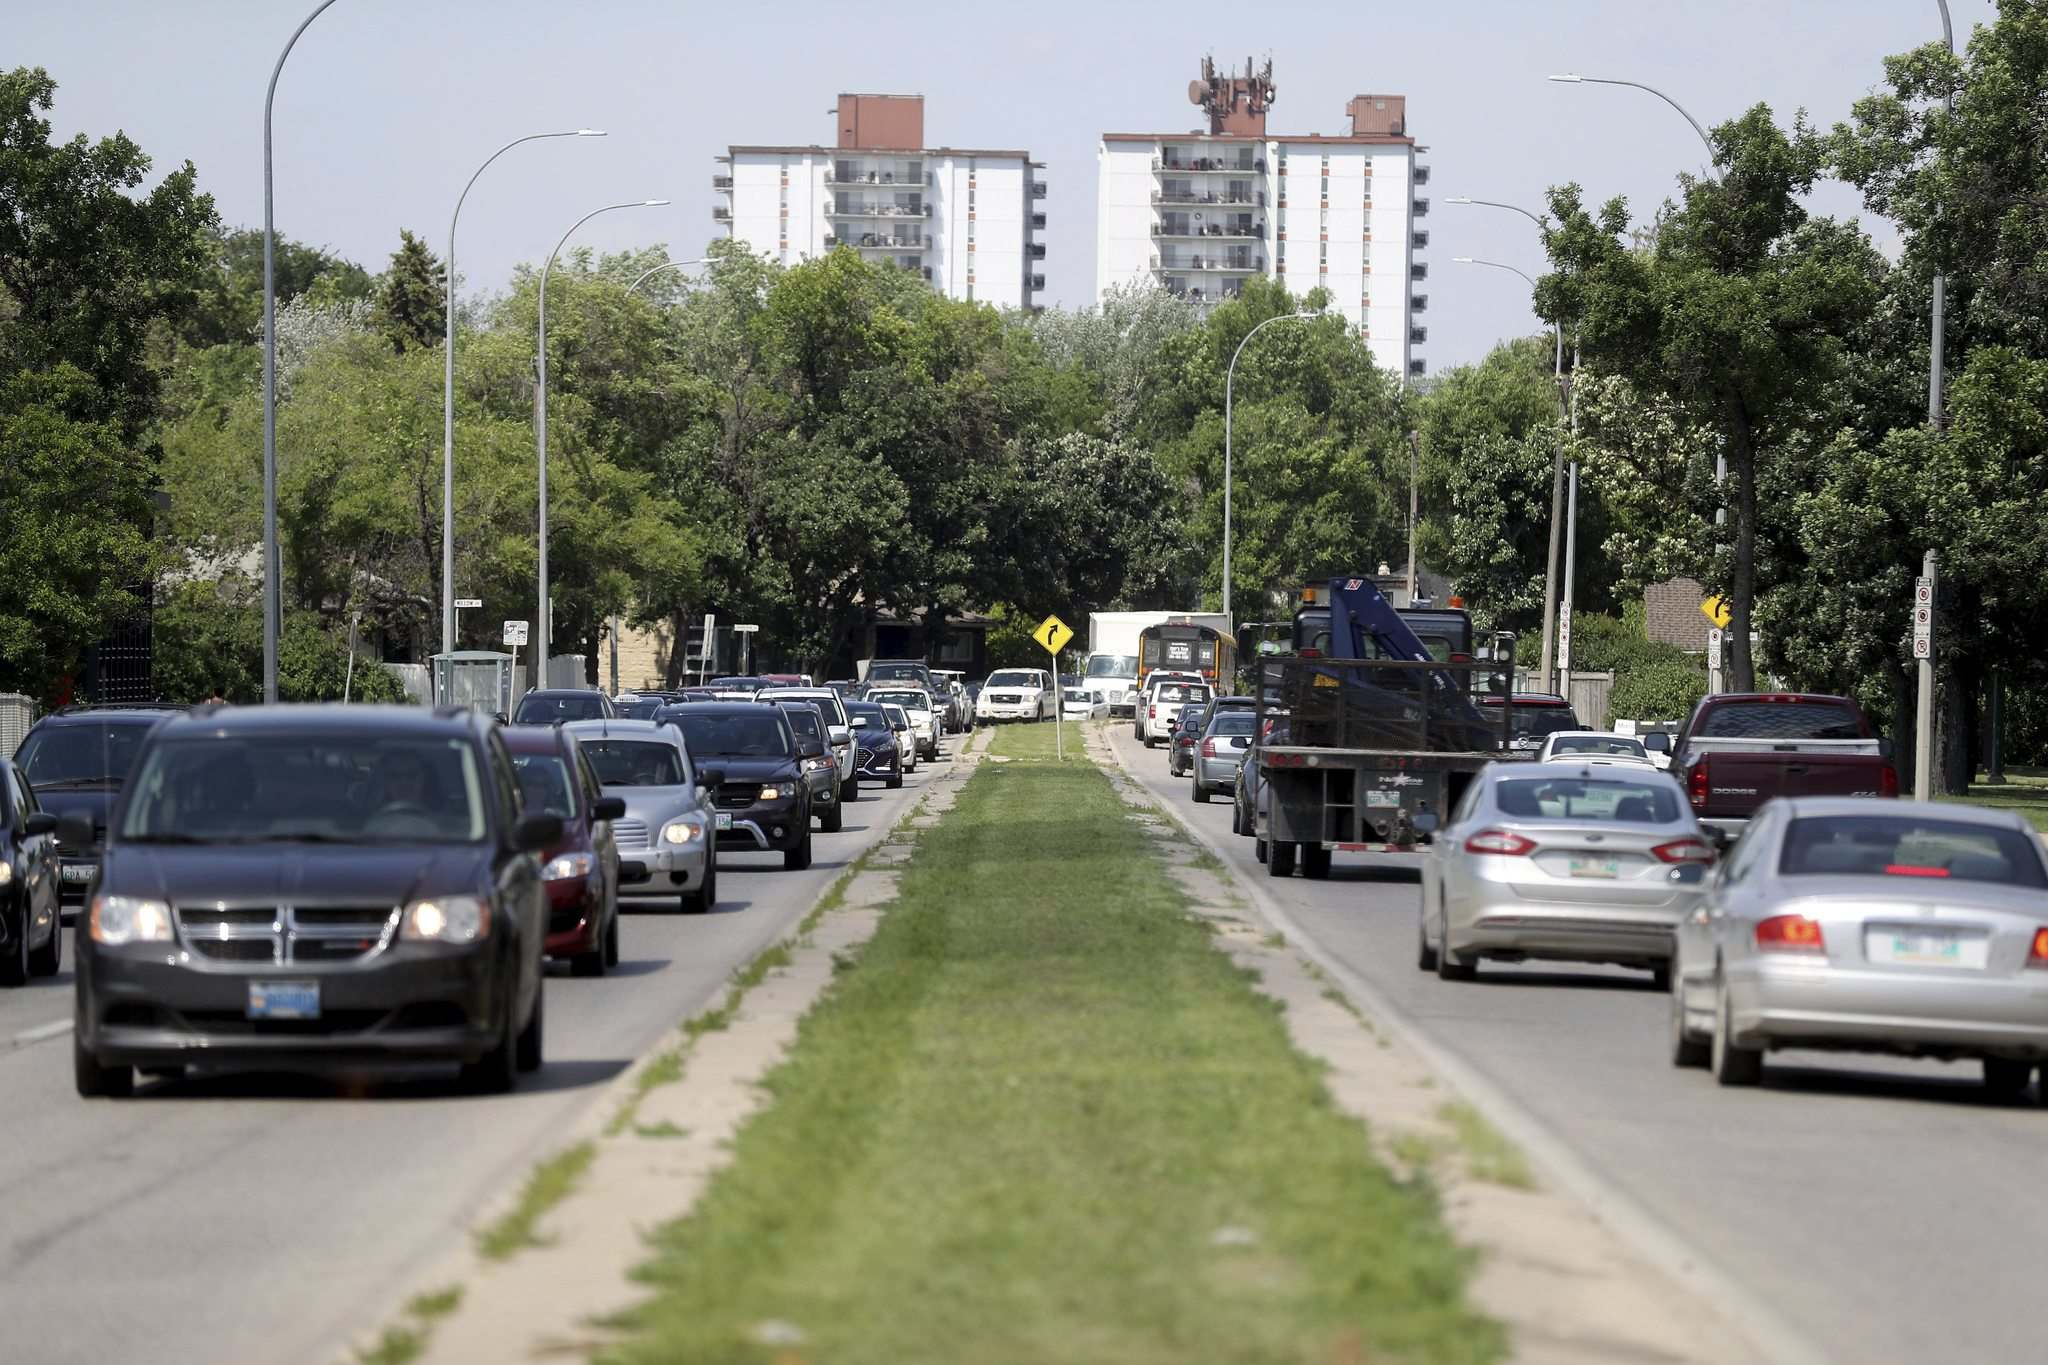 TREVOR HAGAN / WINNIPEG FREE PRESS FILES</p><p>Widening Kenaston Boulevard is the obvious solution, but it isn't the most innovative or forward-thinking.</p>